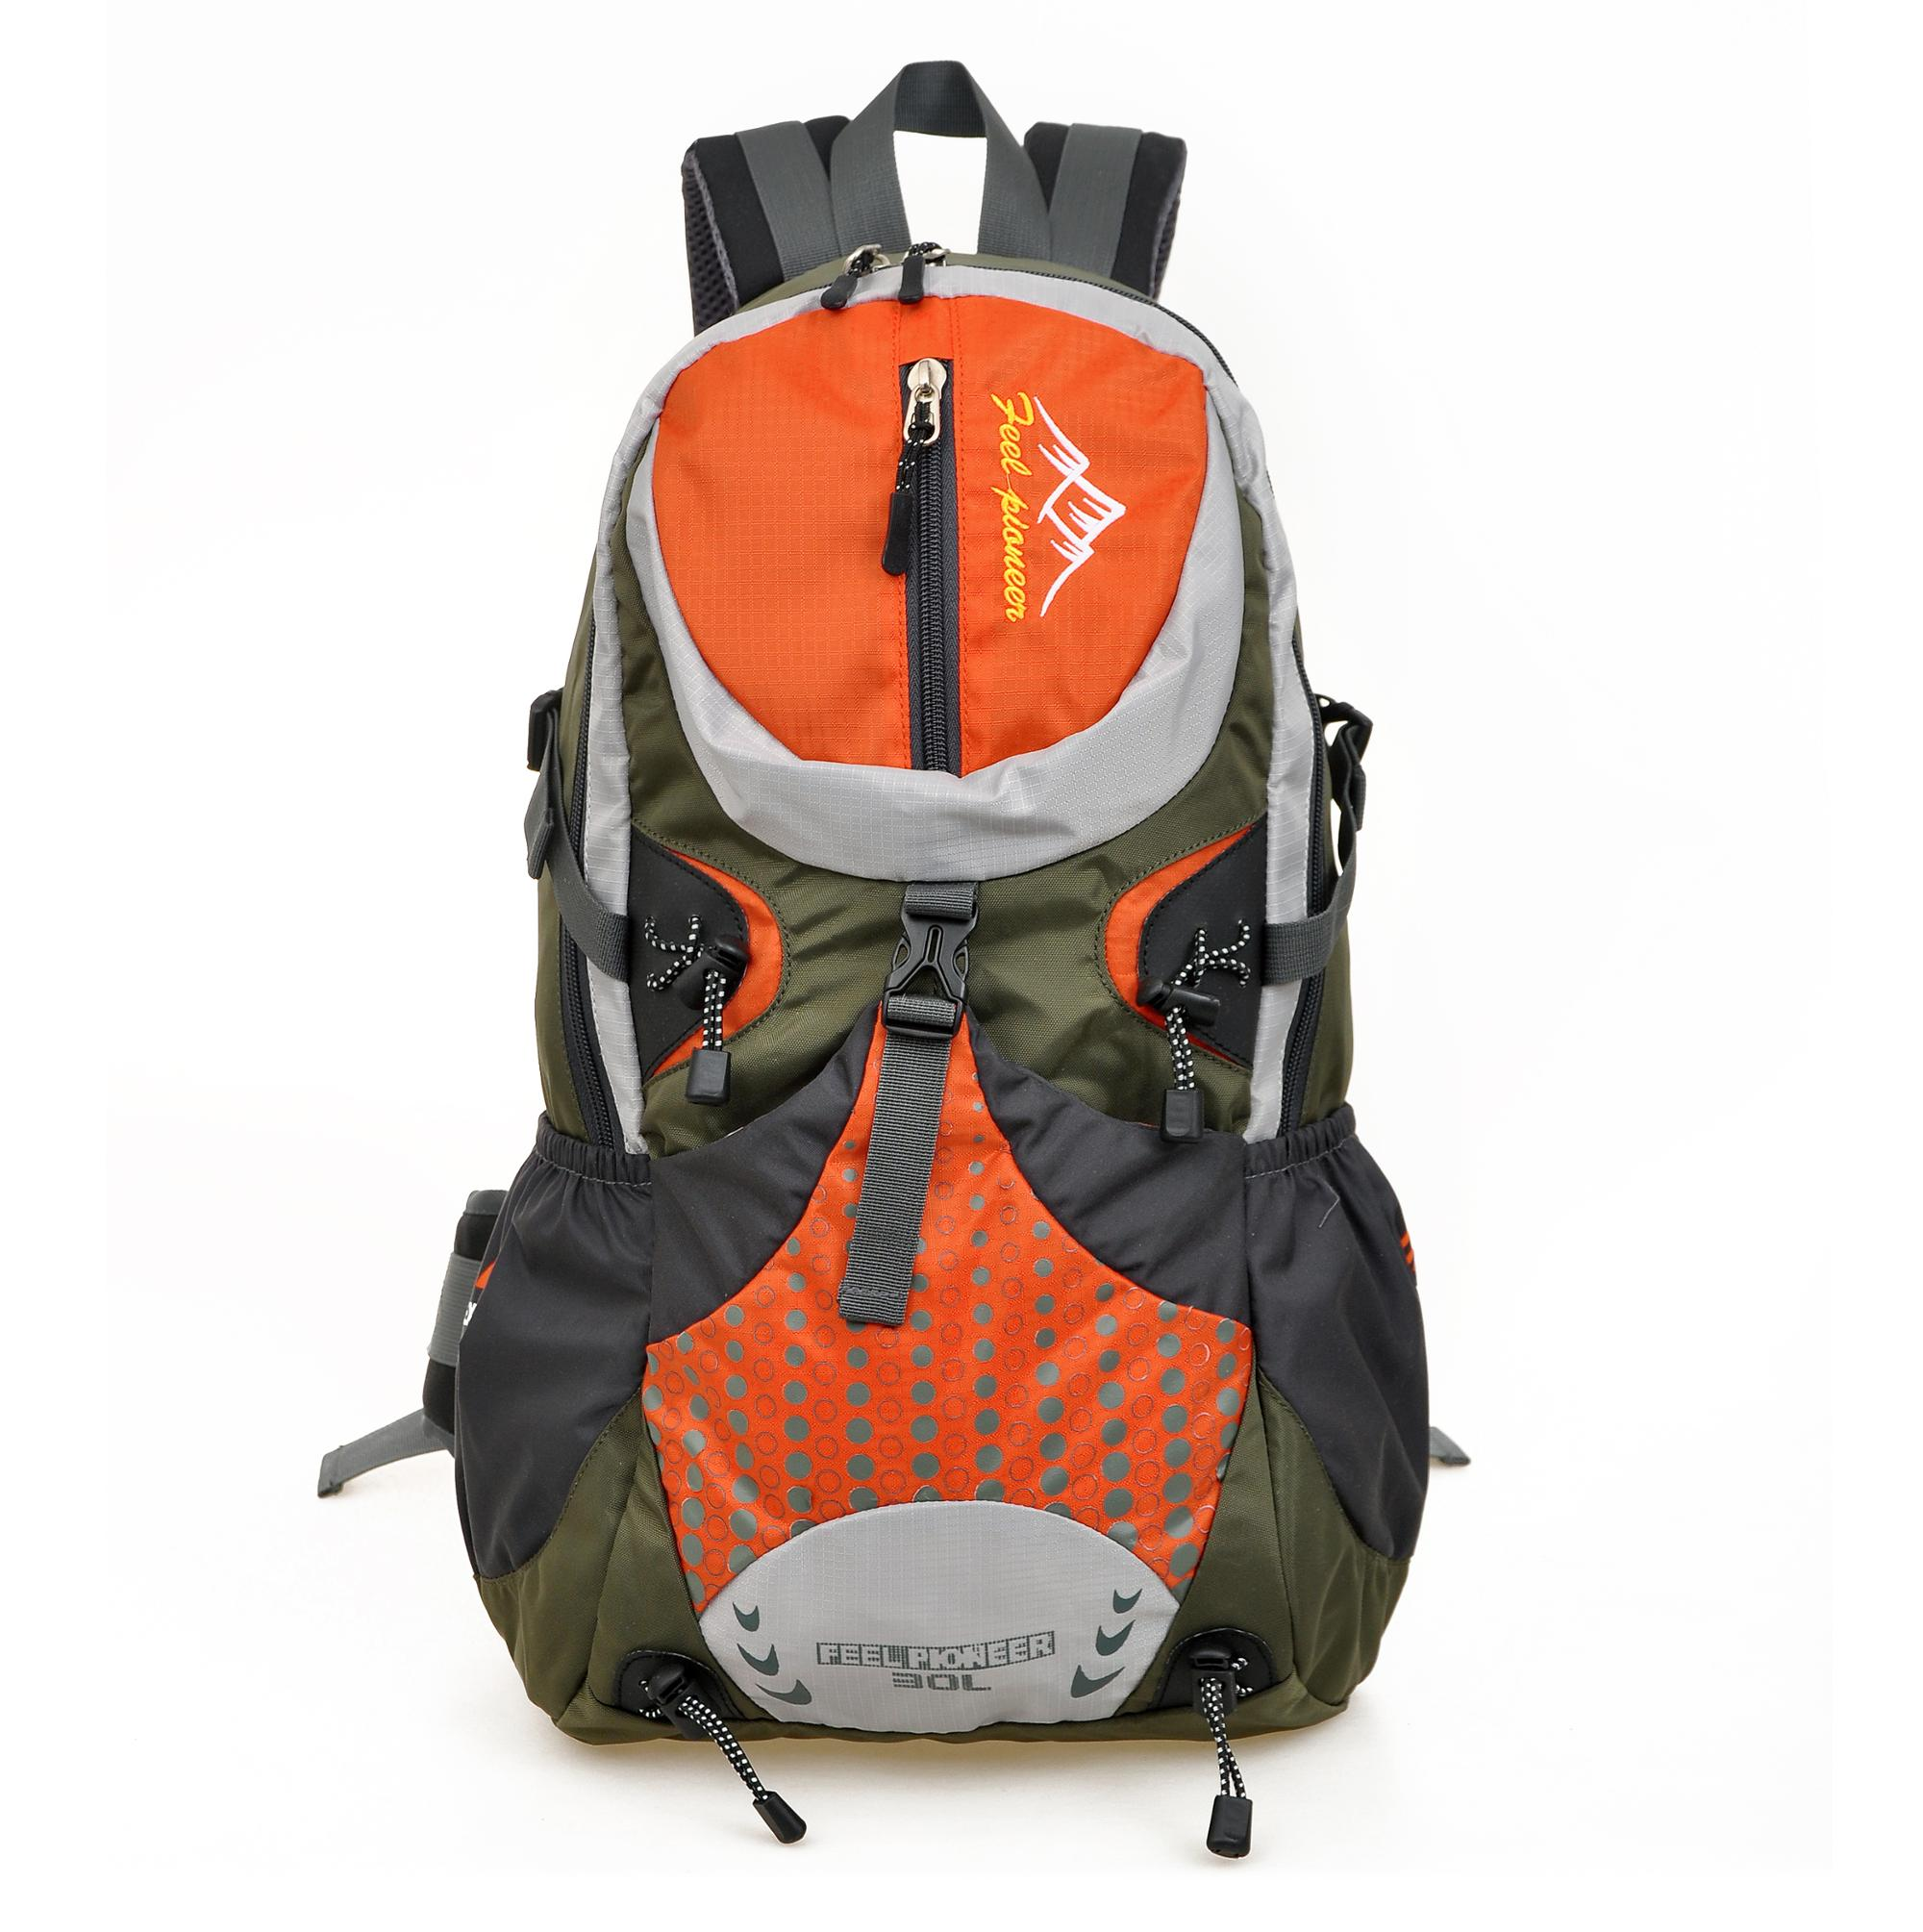 Outdoor Waterproof Sport travelling mountaineering hiking camping bag backpack 30l